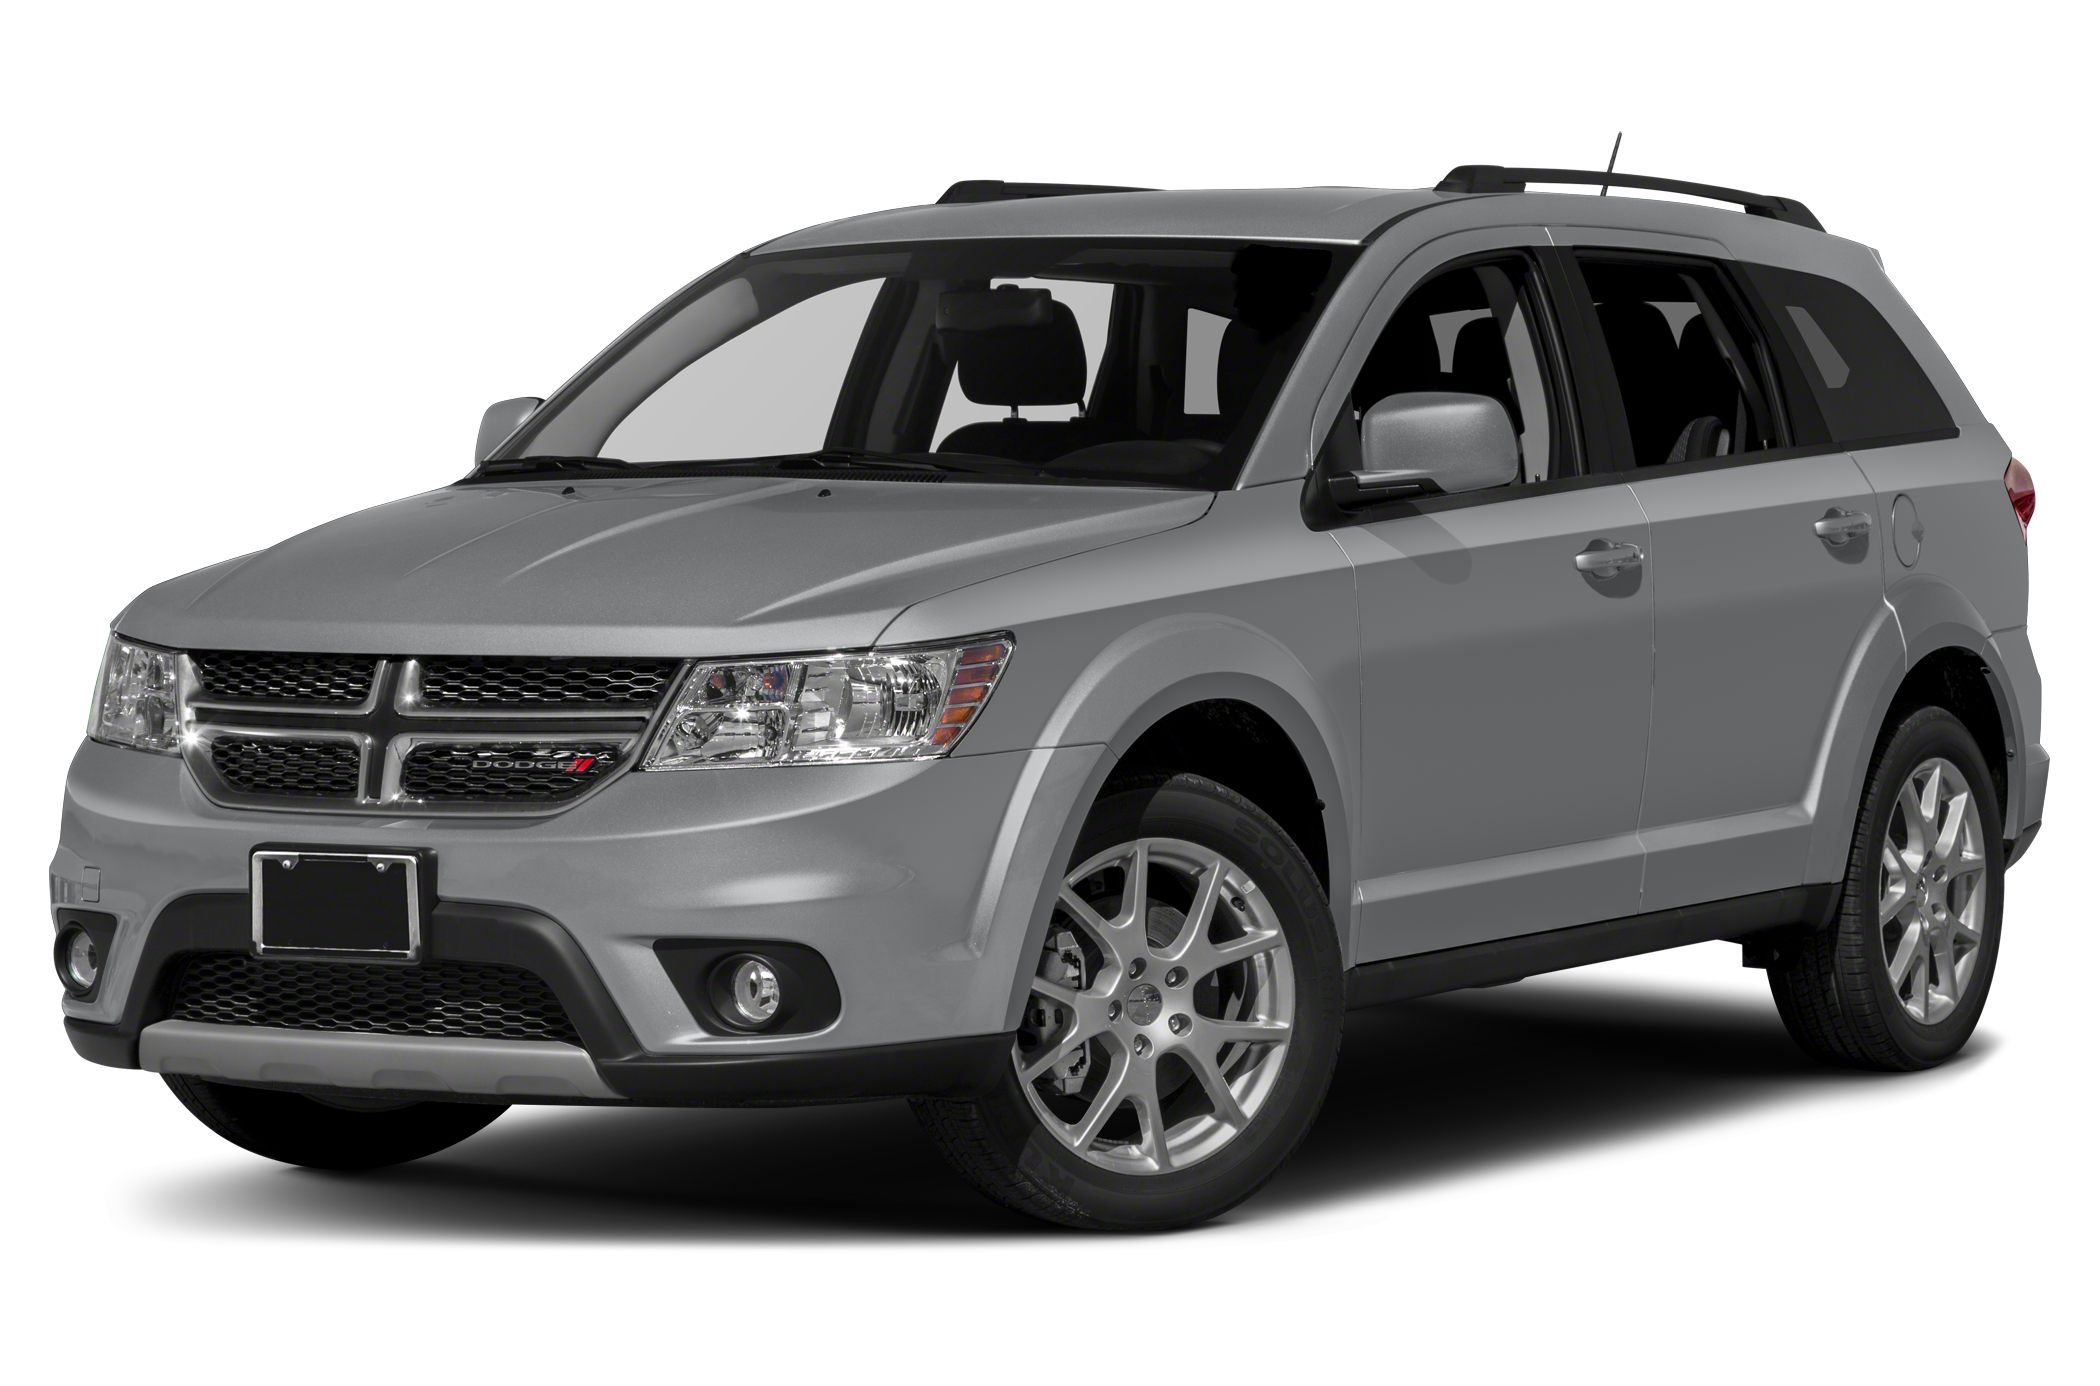 2015 Dodge Journey SXT 2015 Dodge Journey SXT POWER SEATTHIRD ROW SEATINGSIDE AIR BAGS A